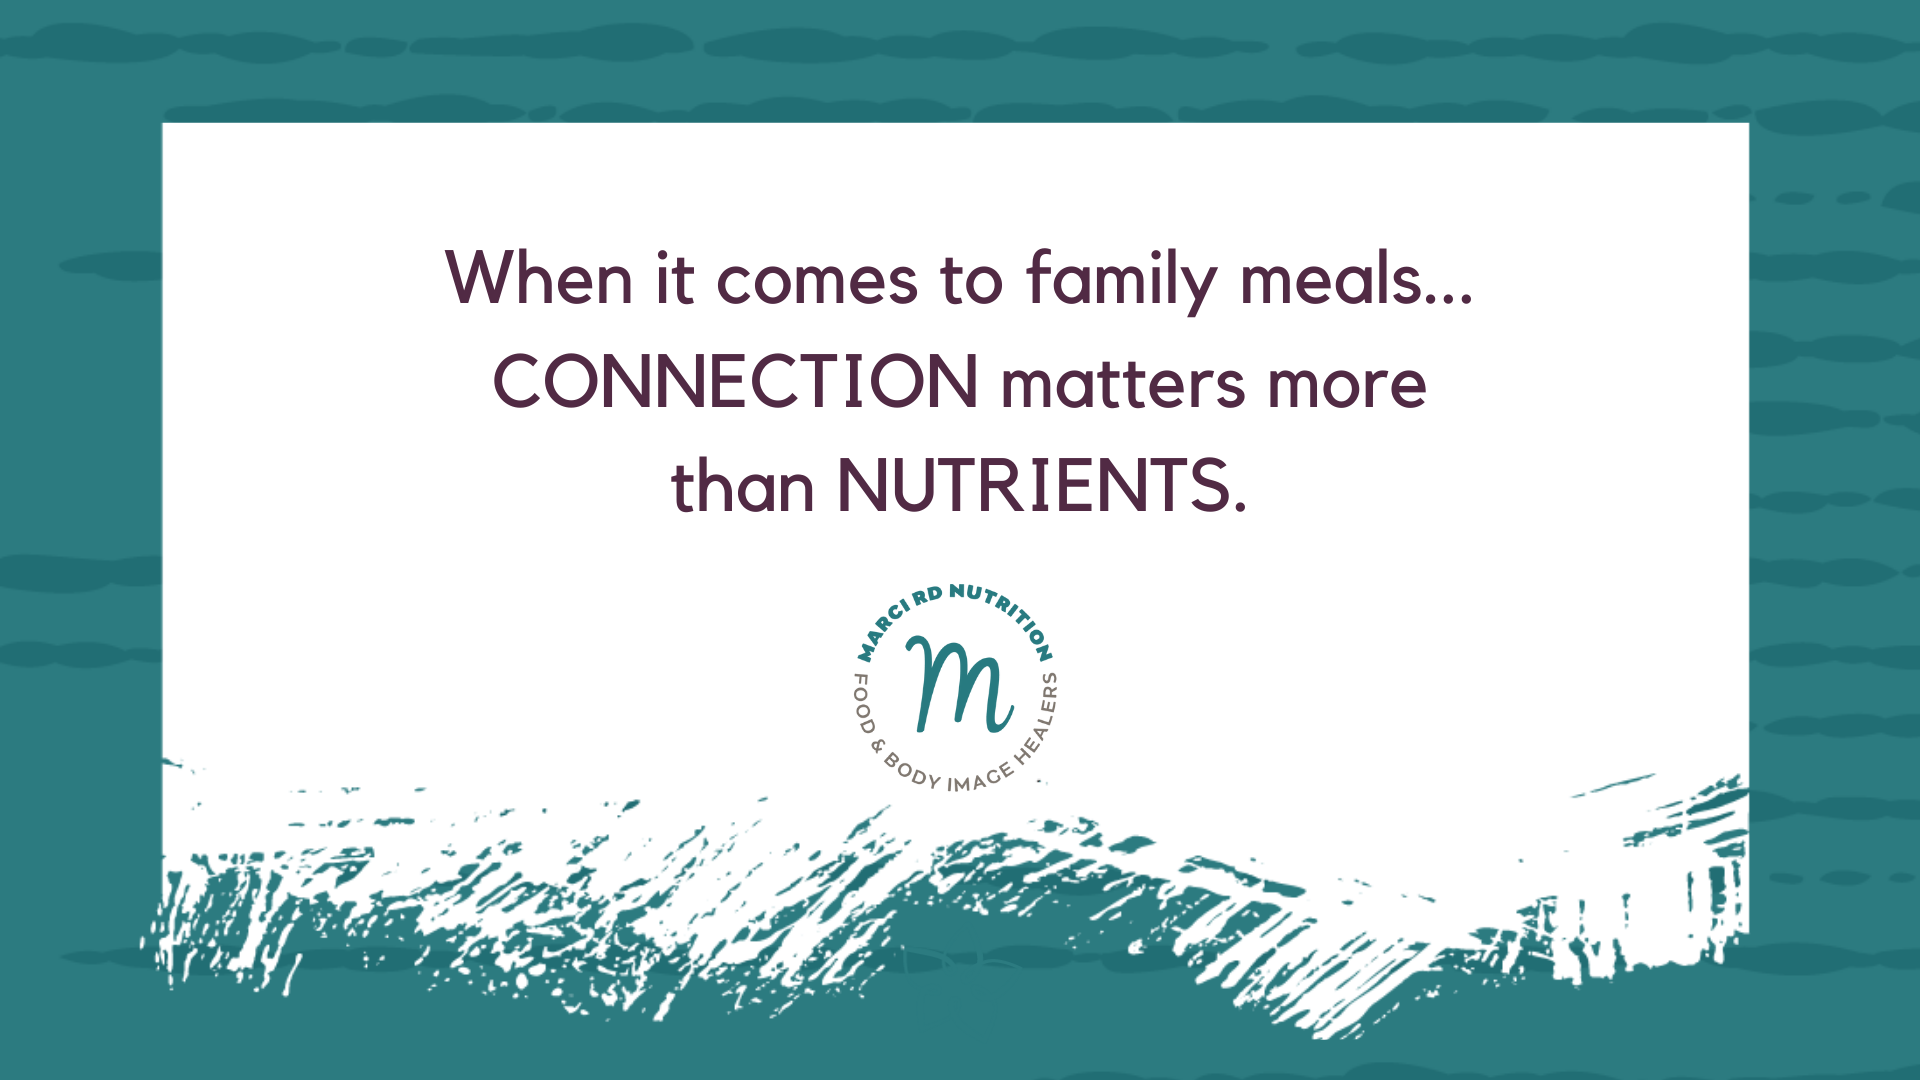 connection matters more than nutrients during family meals